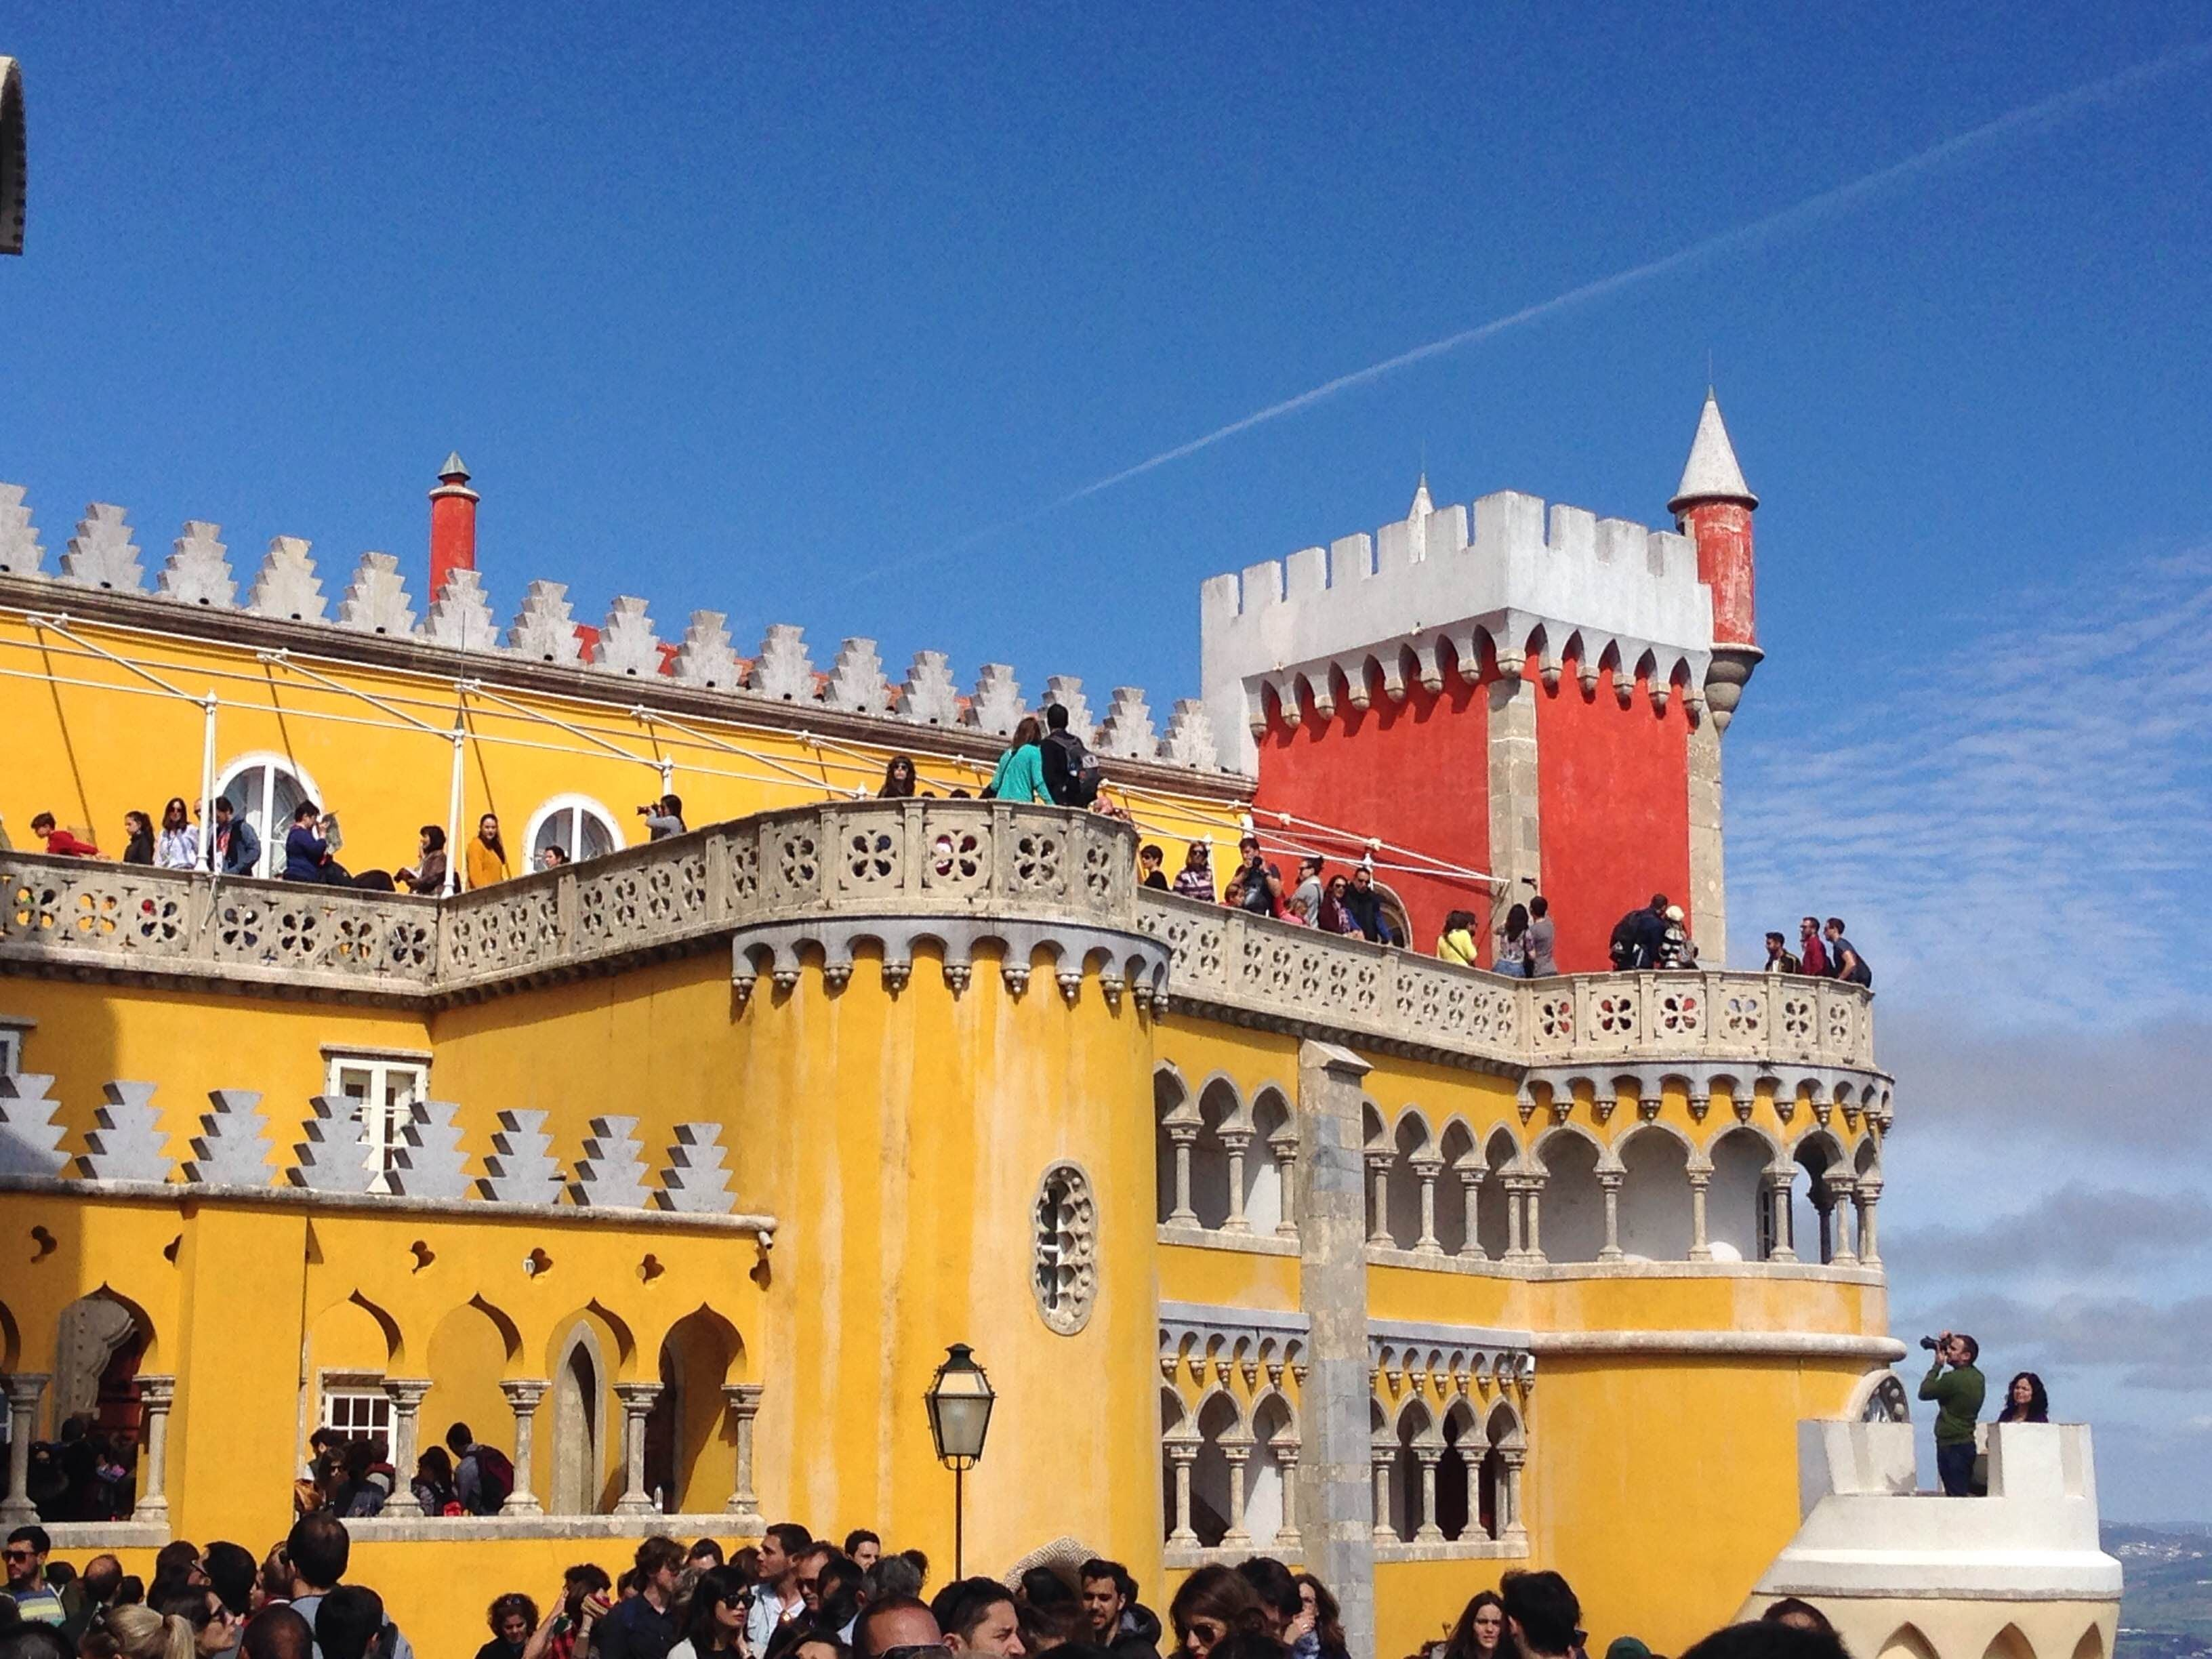 Ferry in Pena National Palace